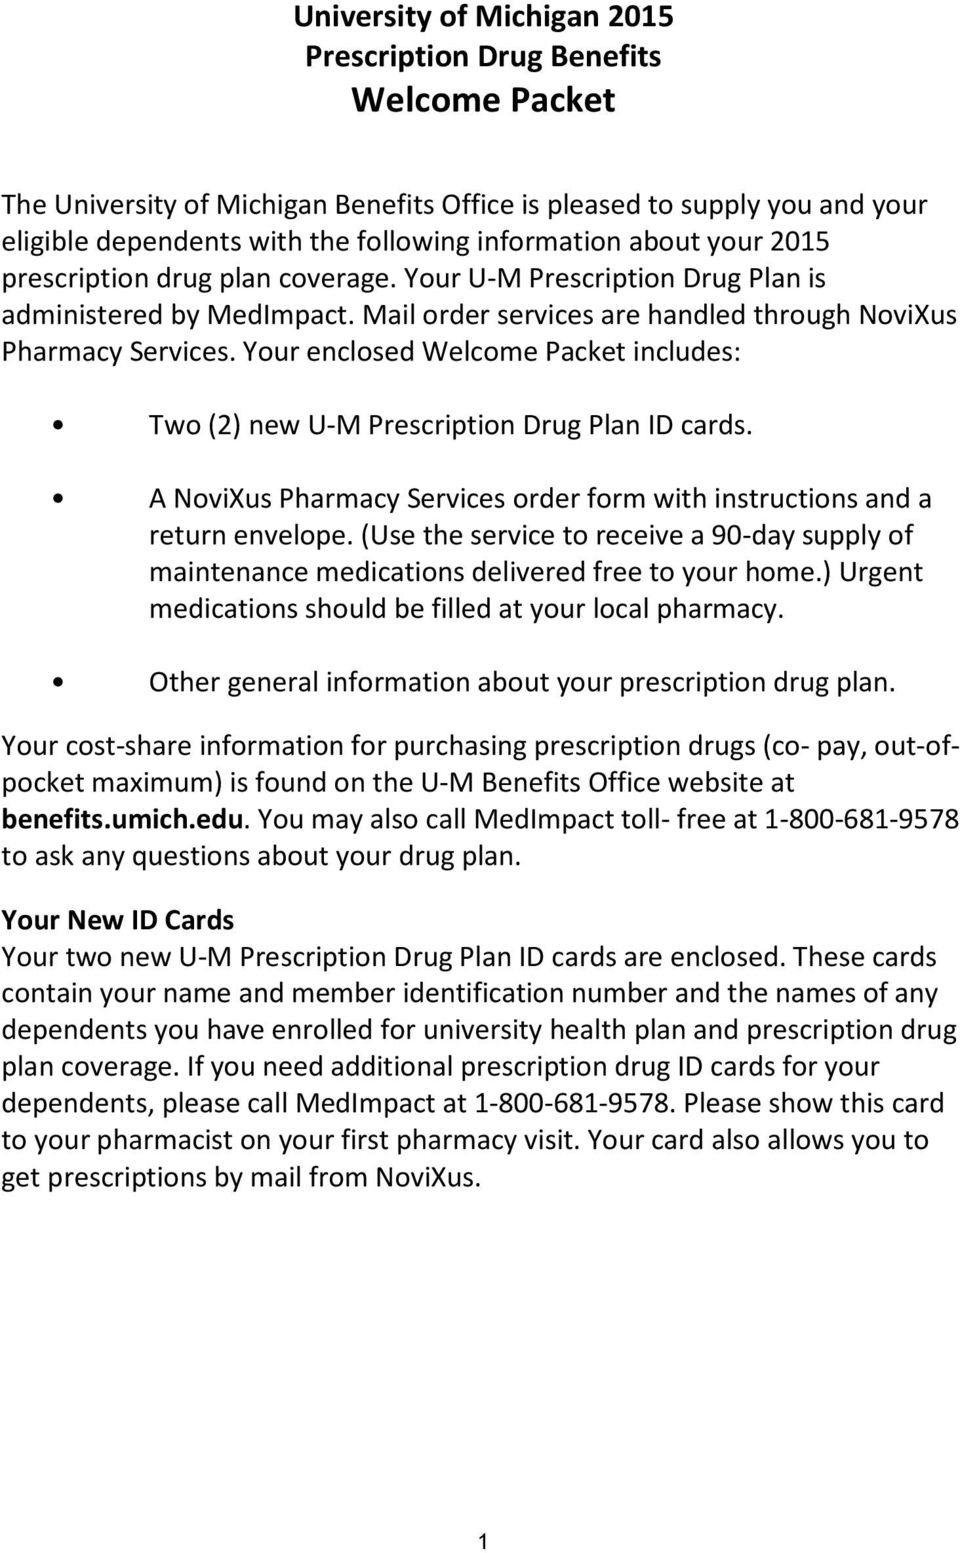 Your enclosed Welcome Packet includes: Two (2) new U-M Prescription Drug Plan ID cards. A NoviXus Pharmacy Services order form with instructions and a return envelope.